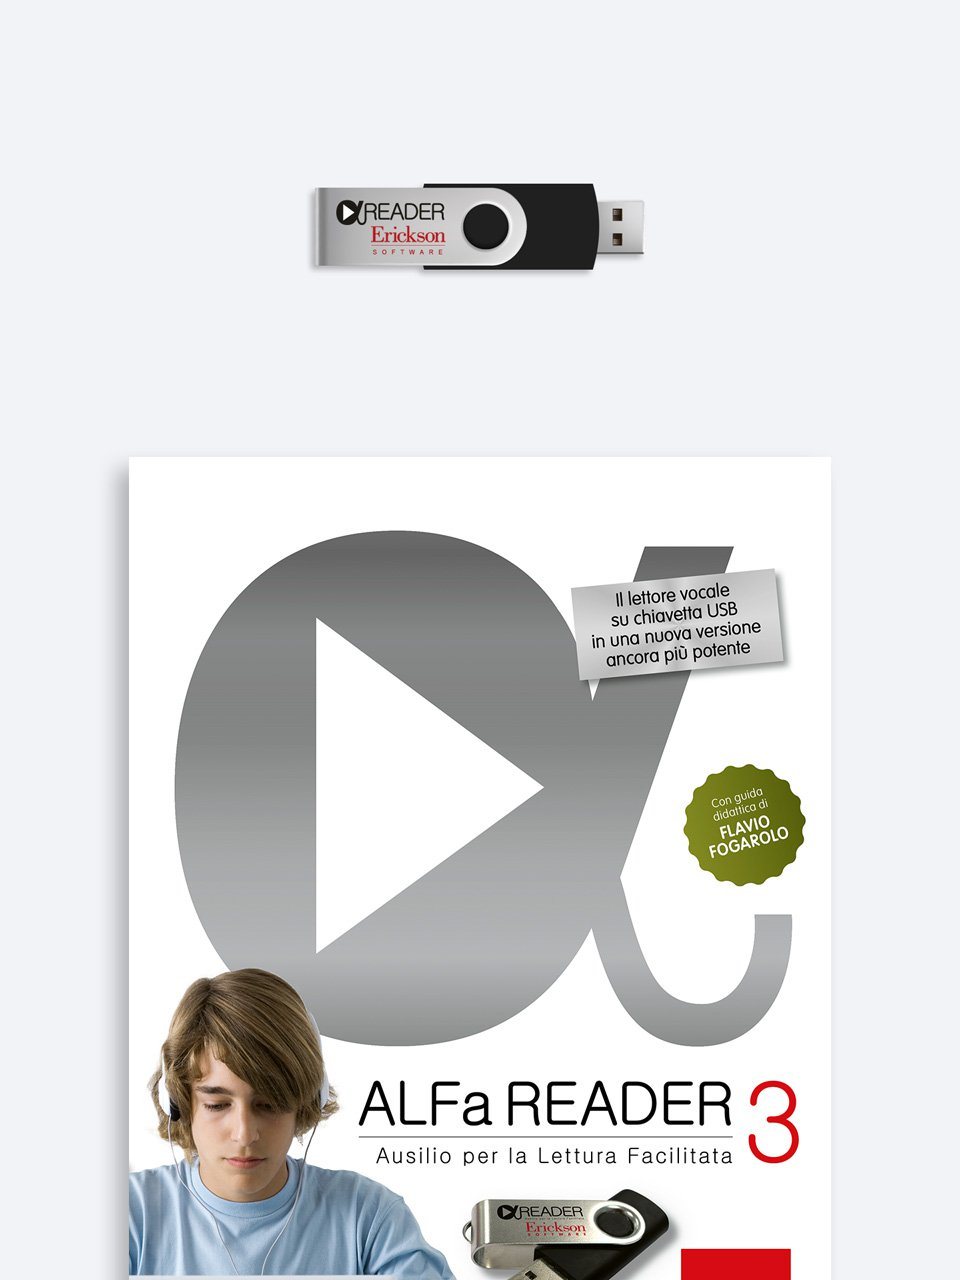 ALFa READER 3 - App e software - Erickson 7